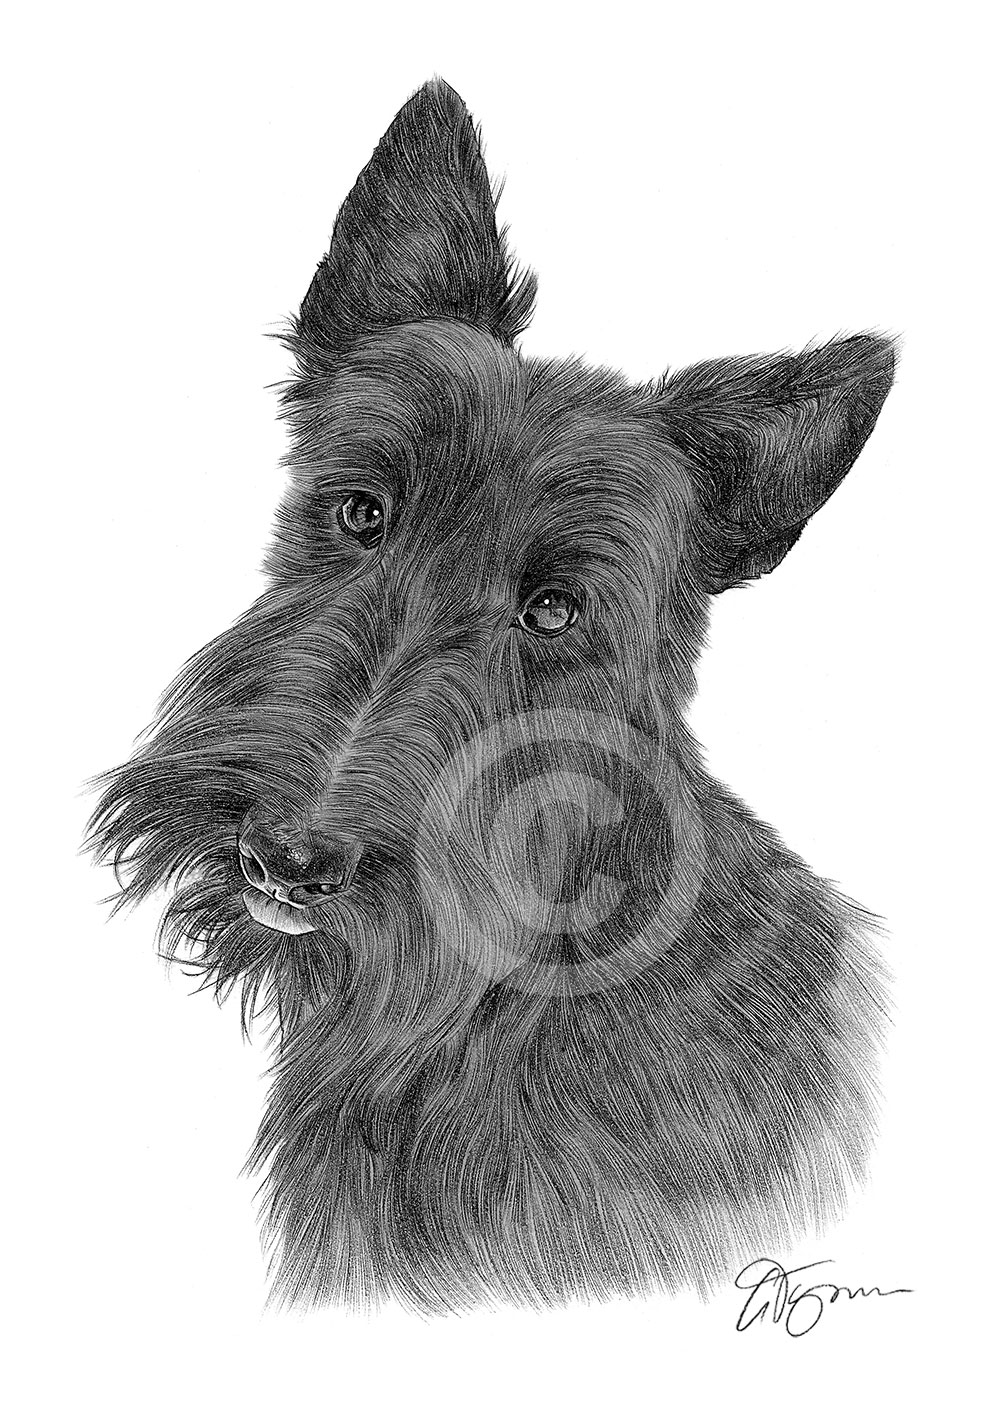 Valentine Westie Kim Niles as well West highland terrier clipart as well Overwatch Doggos 673200041 additionally Imagenes De Perros together with Watch. on scottish terrier drawings